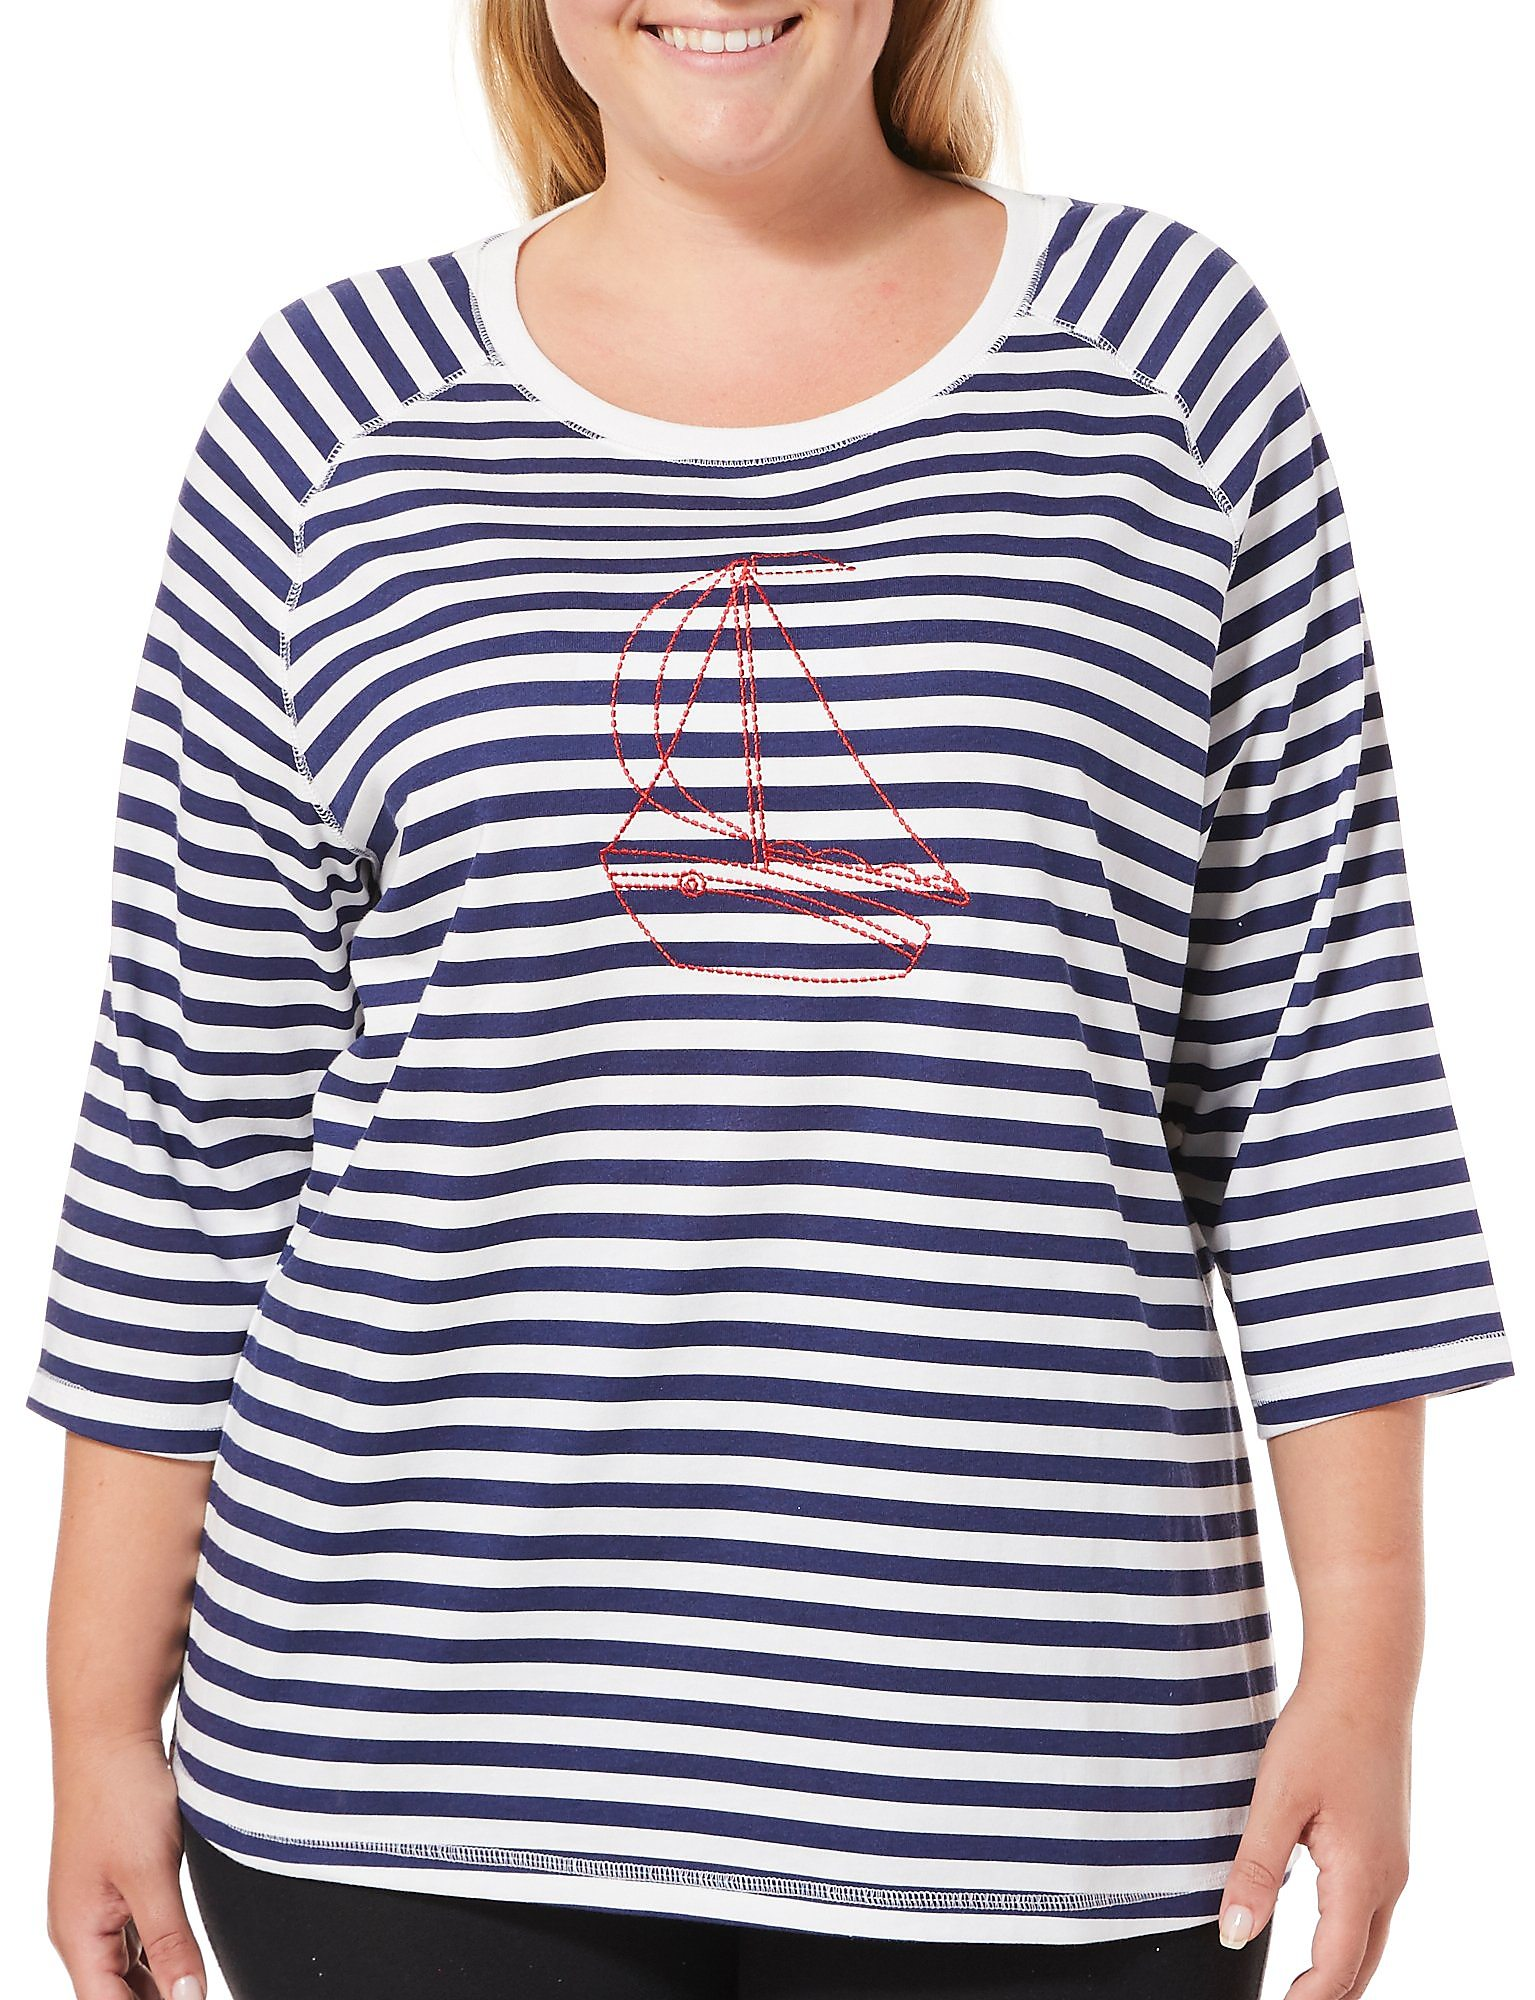 2907c713bbc Details about Coral Bay Plus Embroidered Sailboat Stripe Print Top